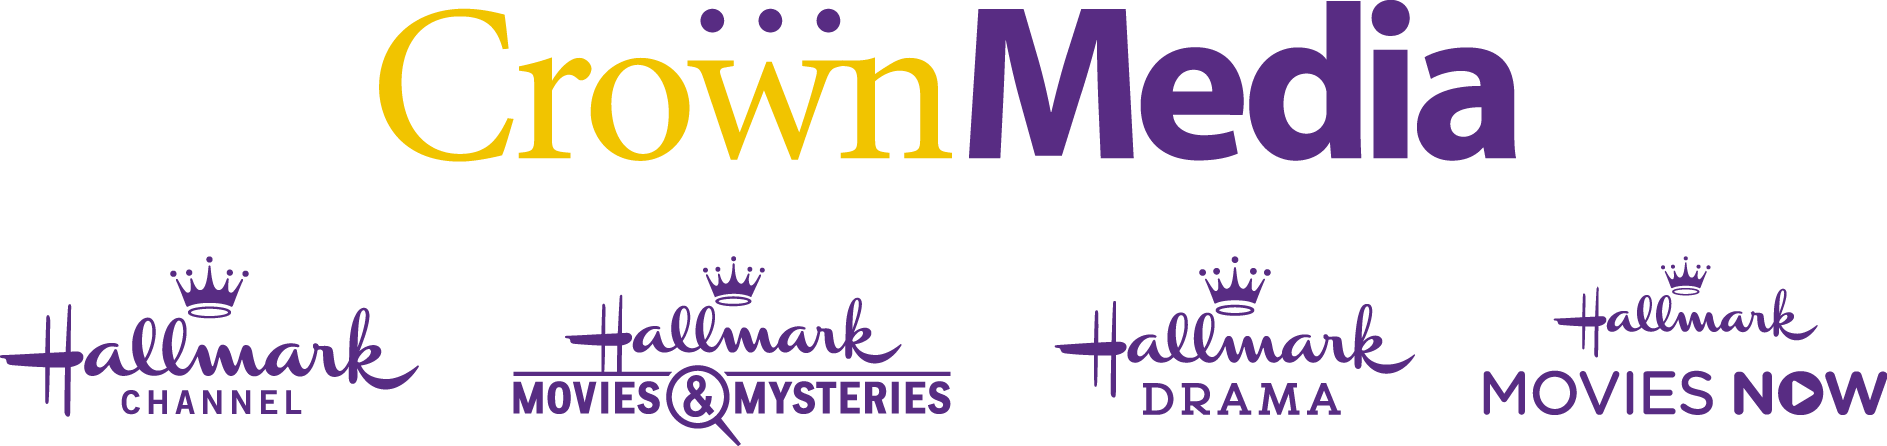 Crown Media InSites logo